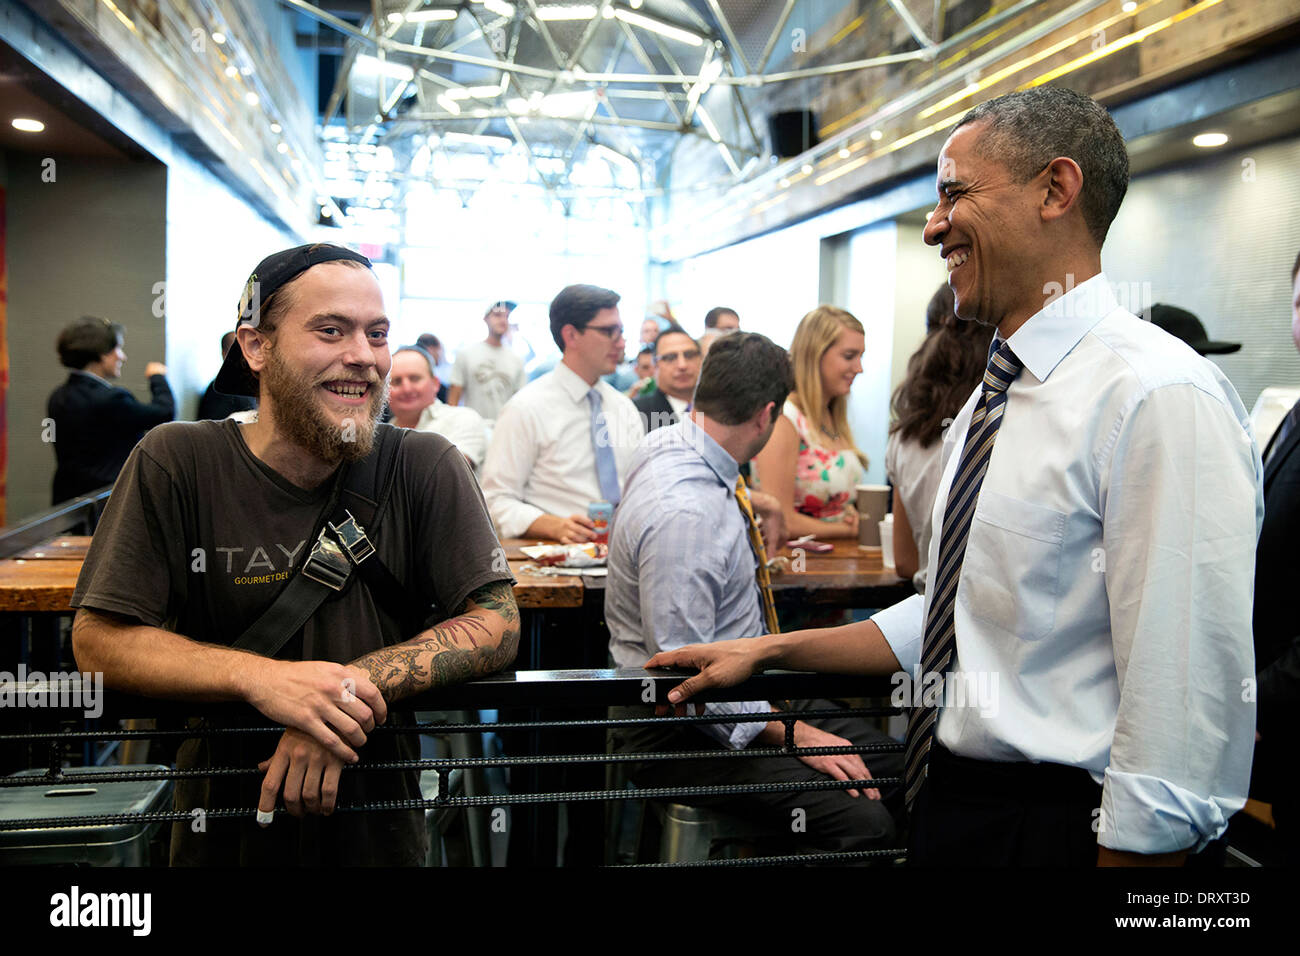 US President Barack Obama talks to an employee at Taylor Gourmet, a sandwich shop near the White House, during a visit to get lunch and thank the shop for offering discounts to furloughed government employees October 4, 2013 in Washington, DC. - Stock Image